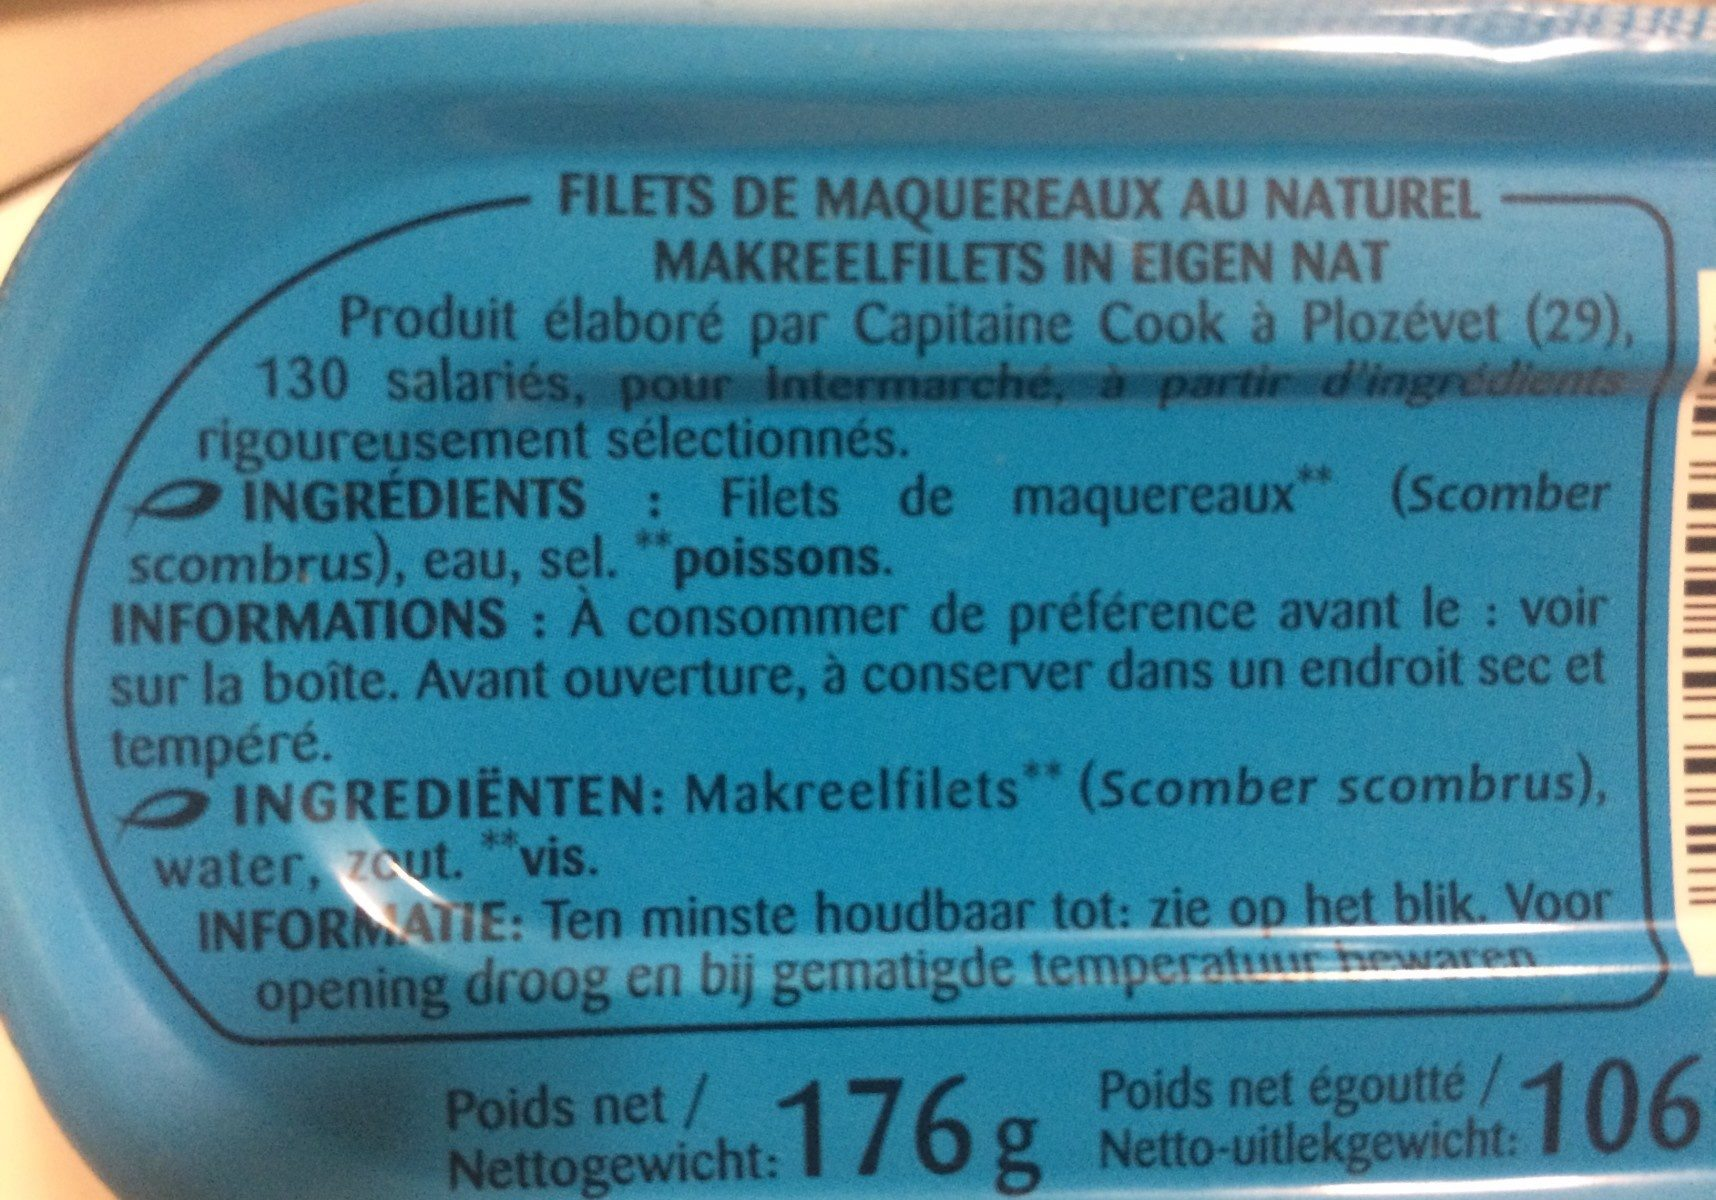 Filets de maquereaux - Ingredients